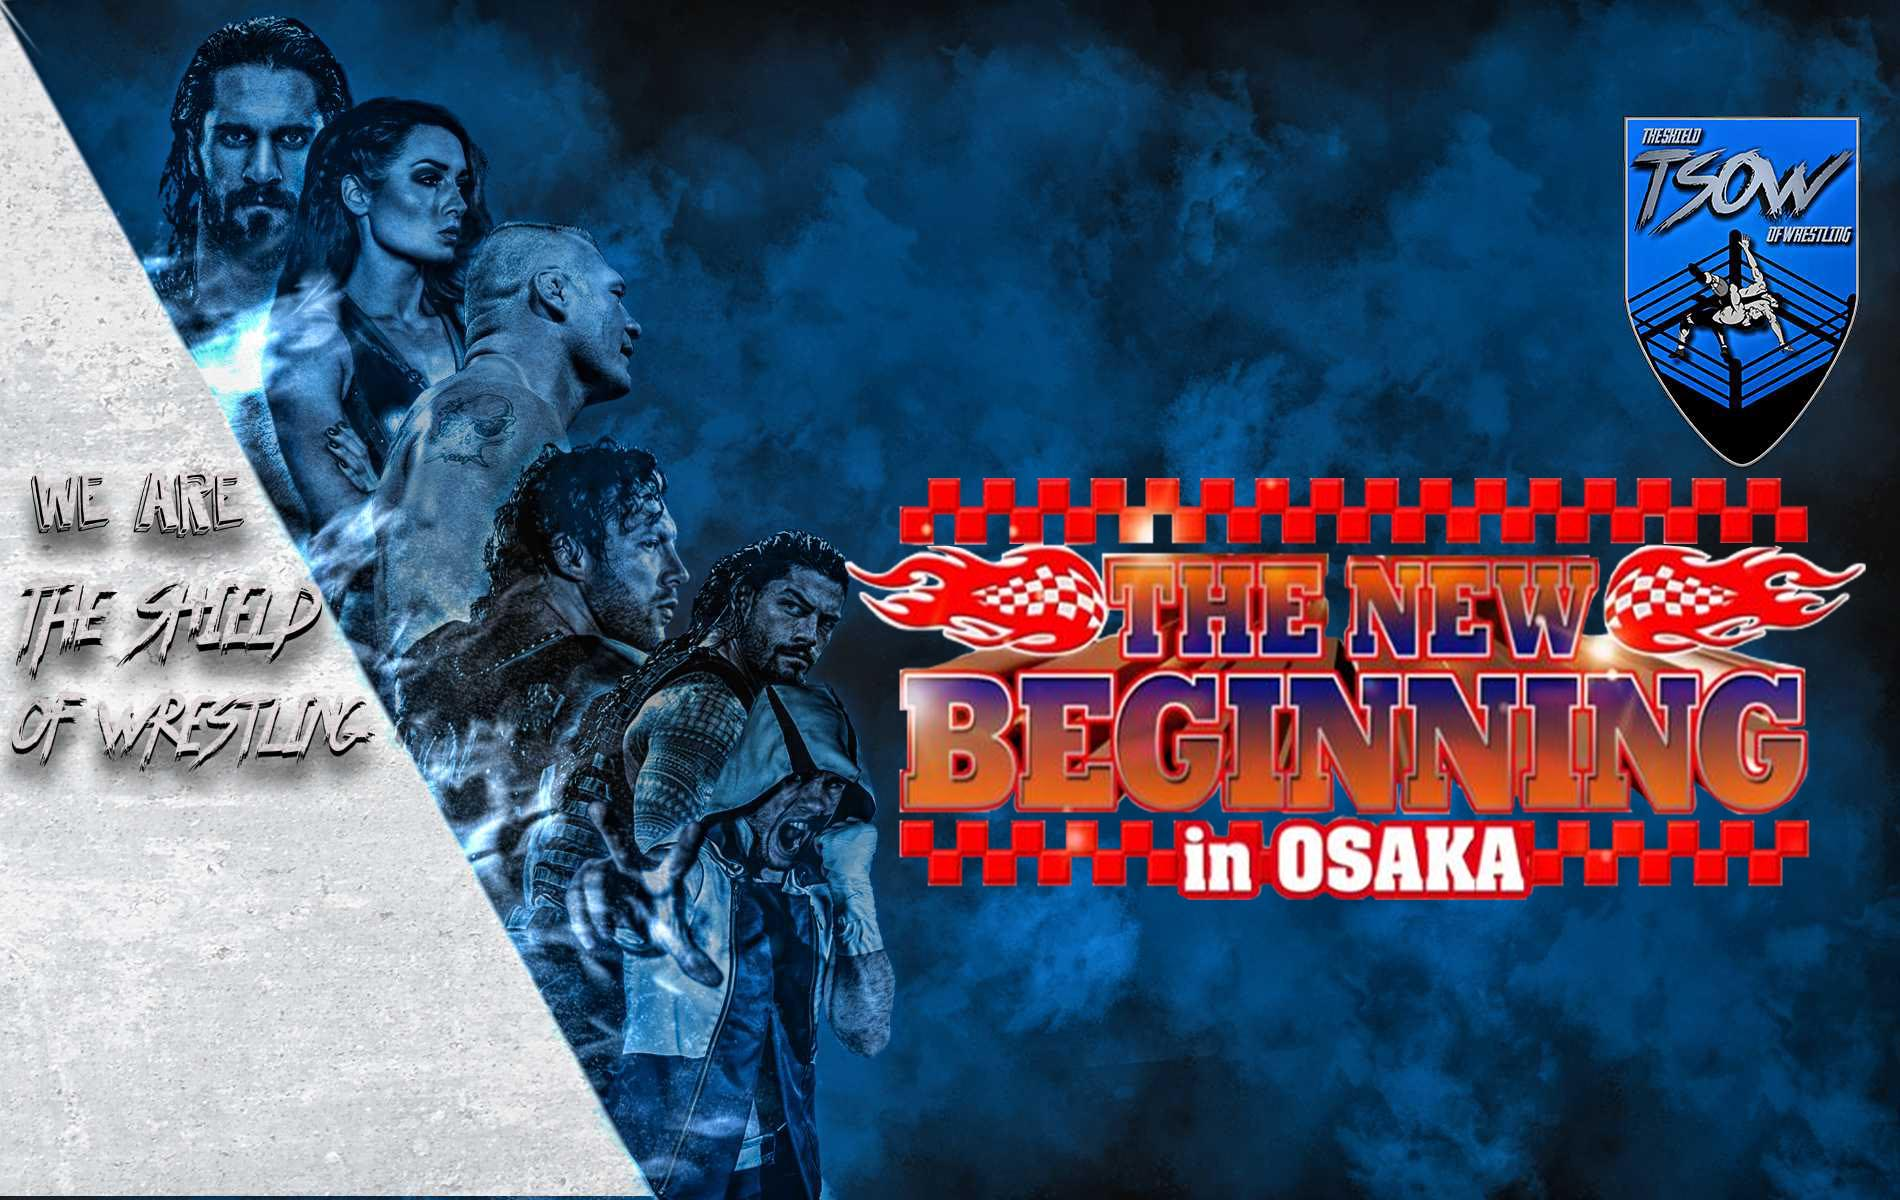 Review The New Beginning in Osaka